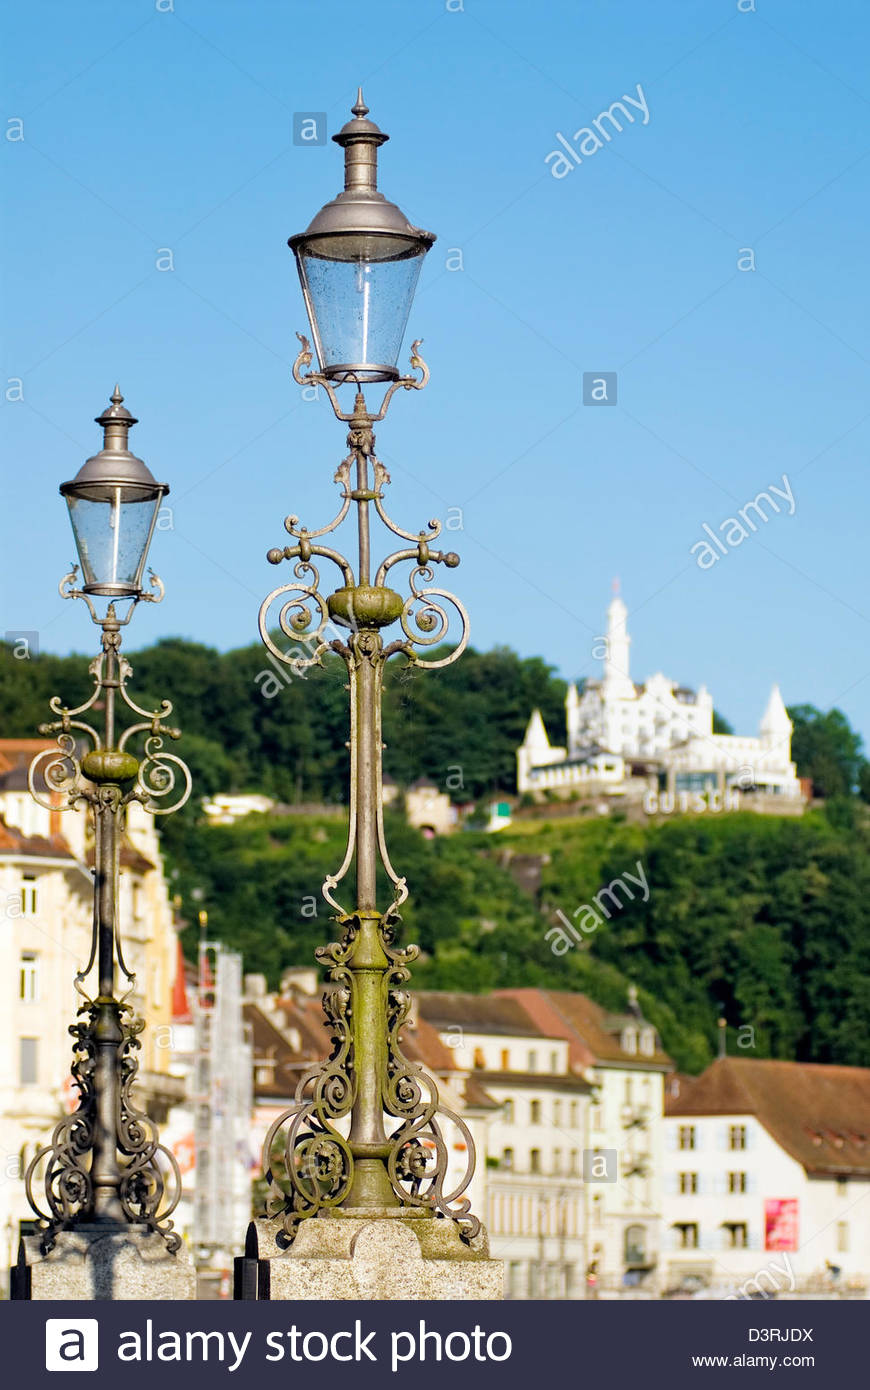 Wrought Iron Lantern At The Lucerne Old Town With The Château Guetsch In  The Background,